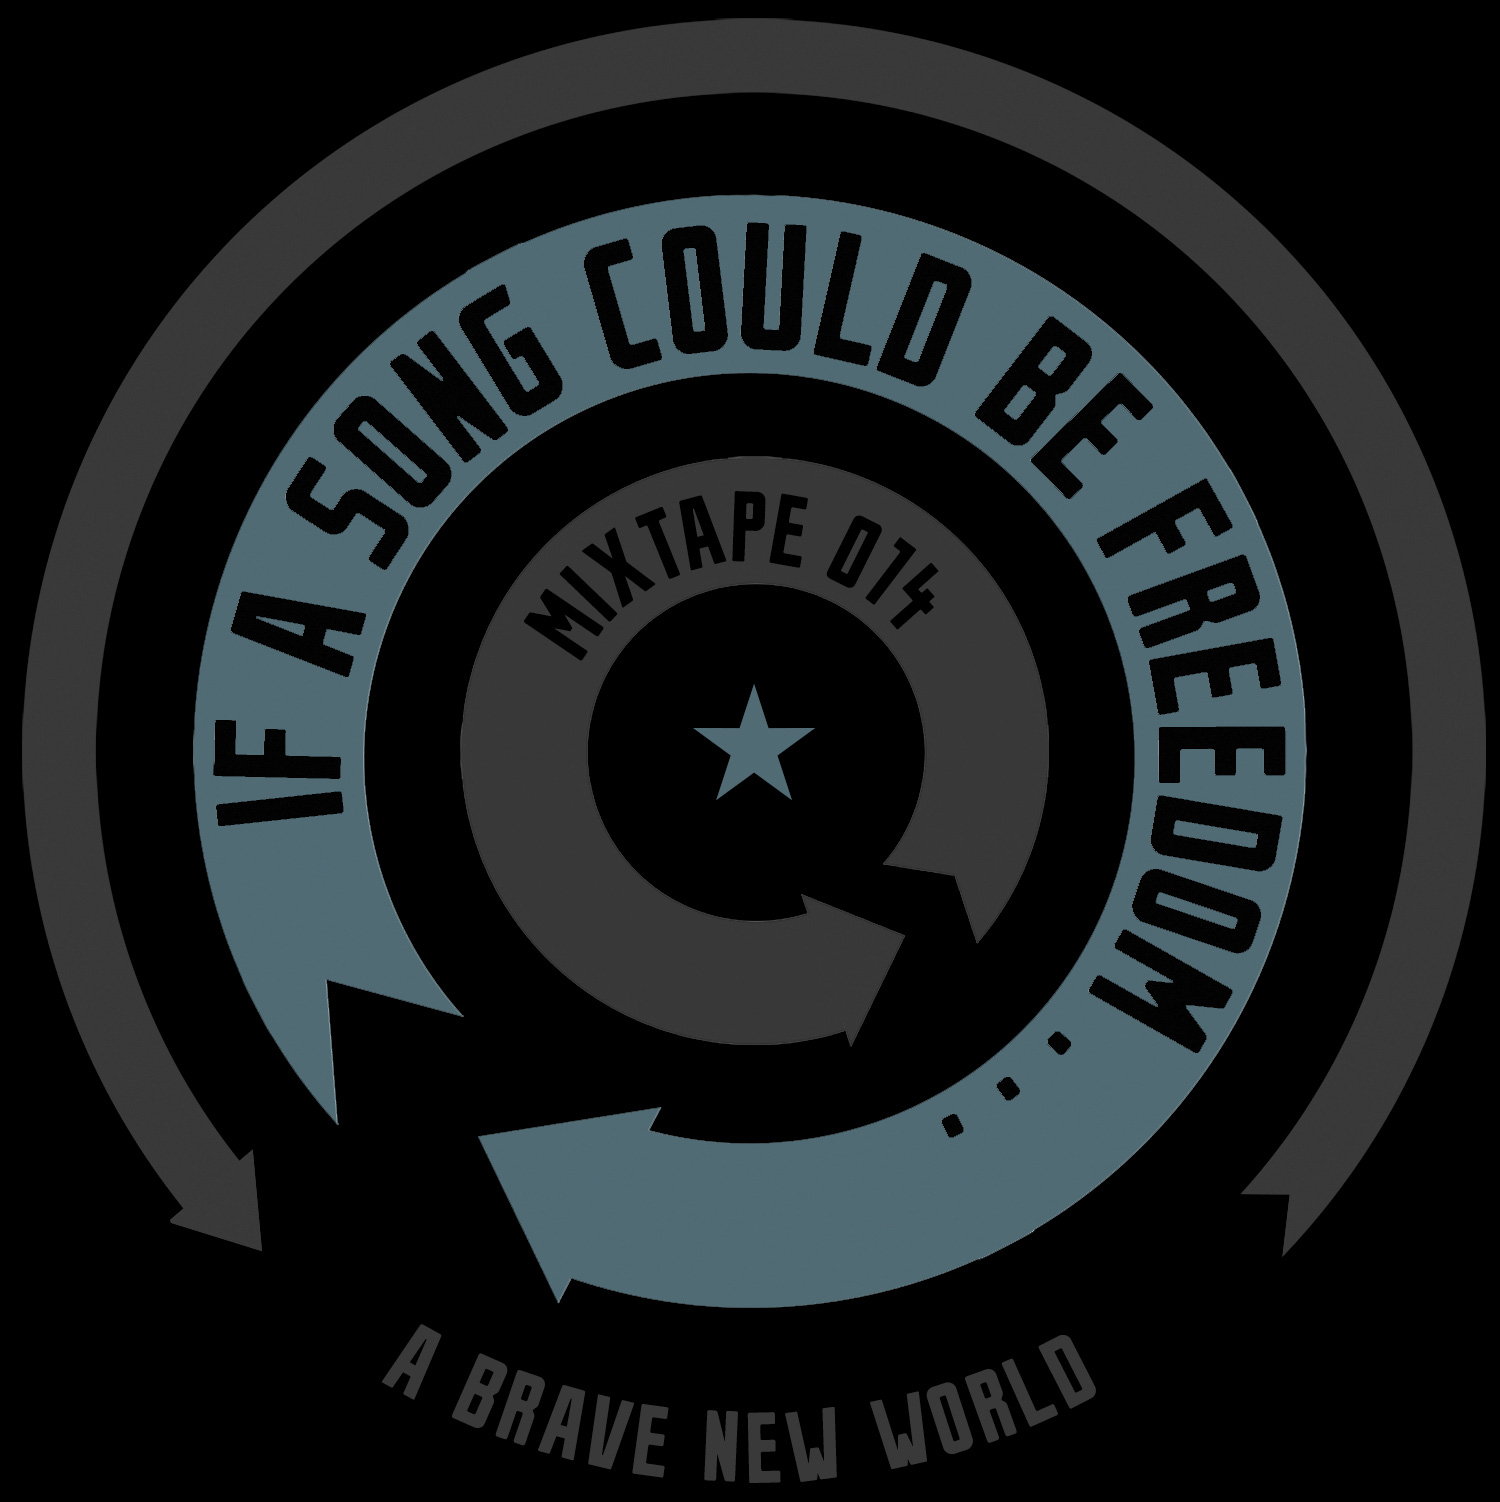 if a song could be freedom 014 – A Brave New World by Jamie Chaoten